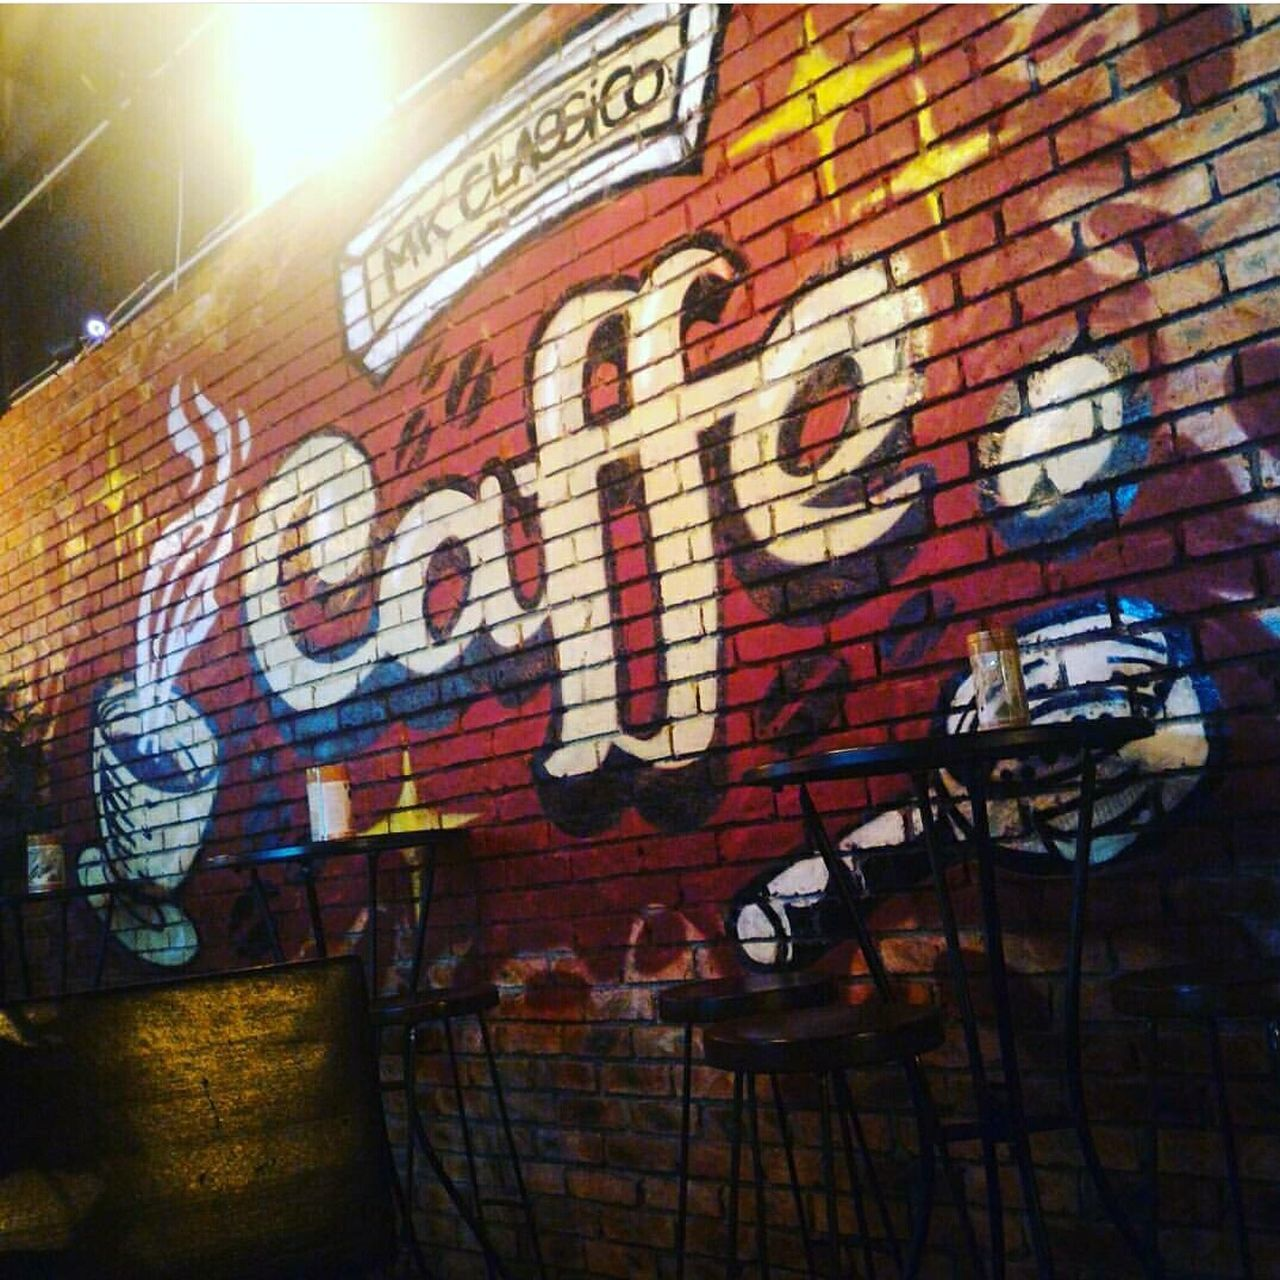 graffiti, brick wall, text, no people, day, architecture, built structure, illuminated, indoors, close-up